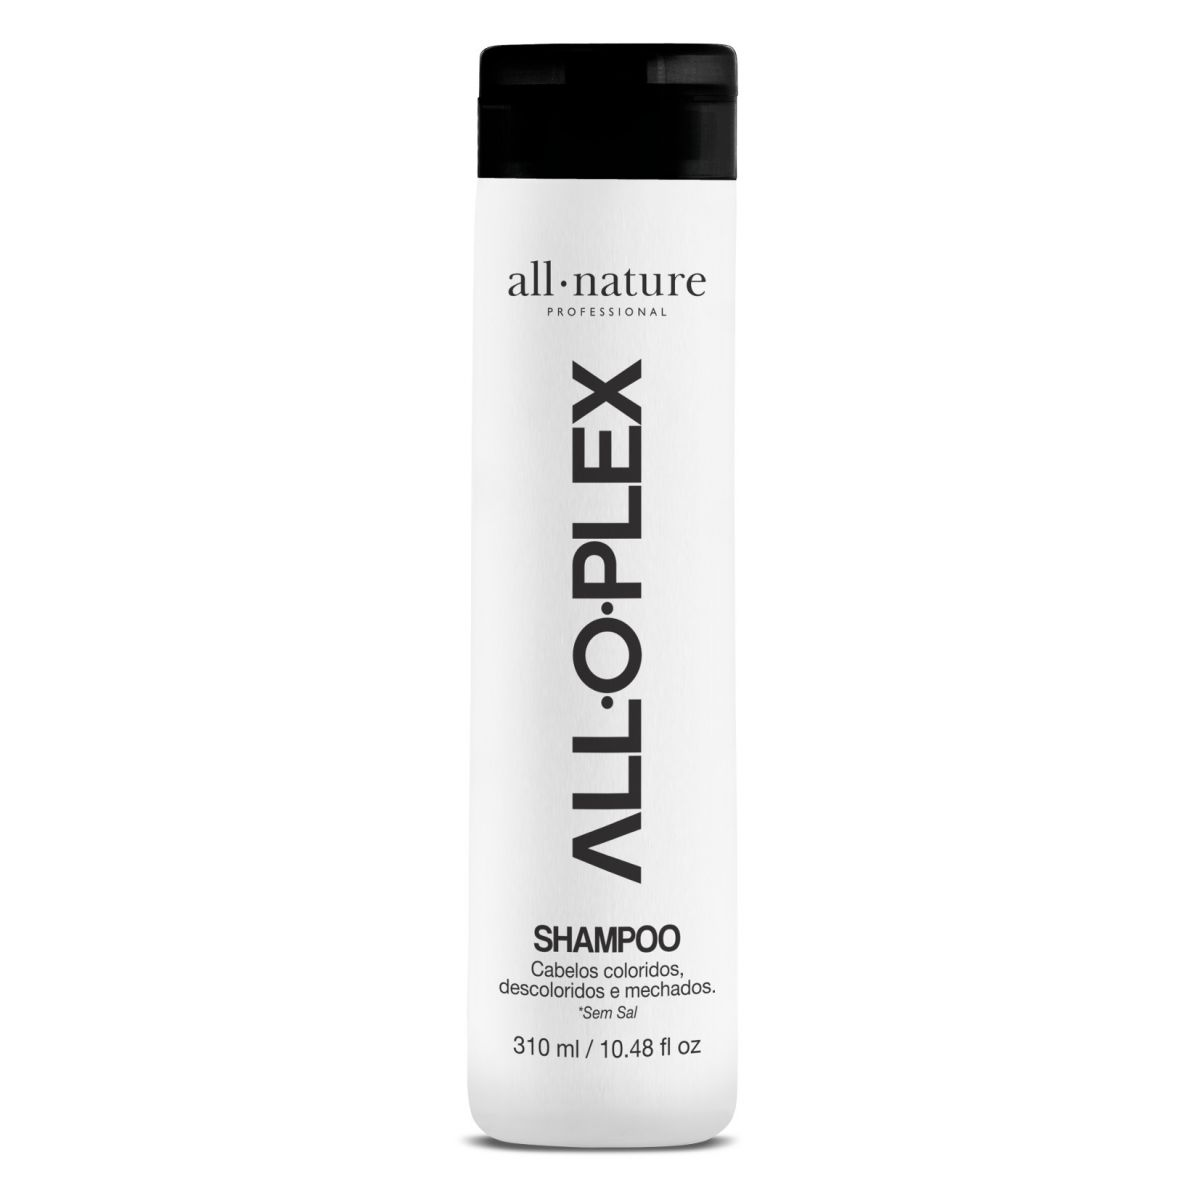 Shampoo Alloplex  Cabelos Coloridos Descoloridos ou Mechados All Nture